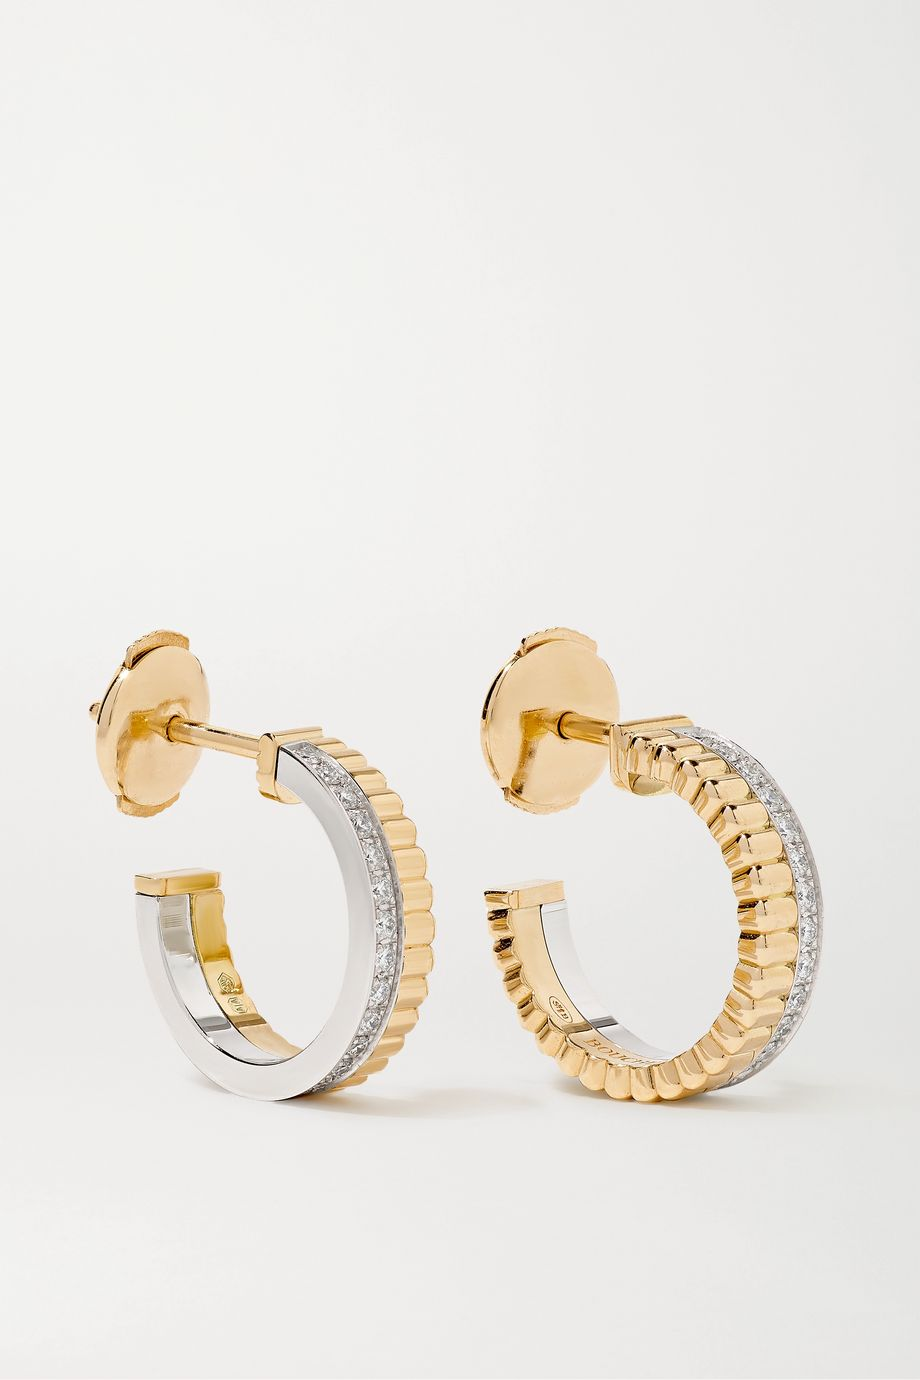 Boucheron Quatre Radiant Edition 18-karat yellow and white gold diamond earrings